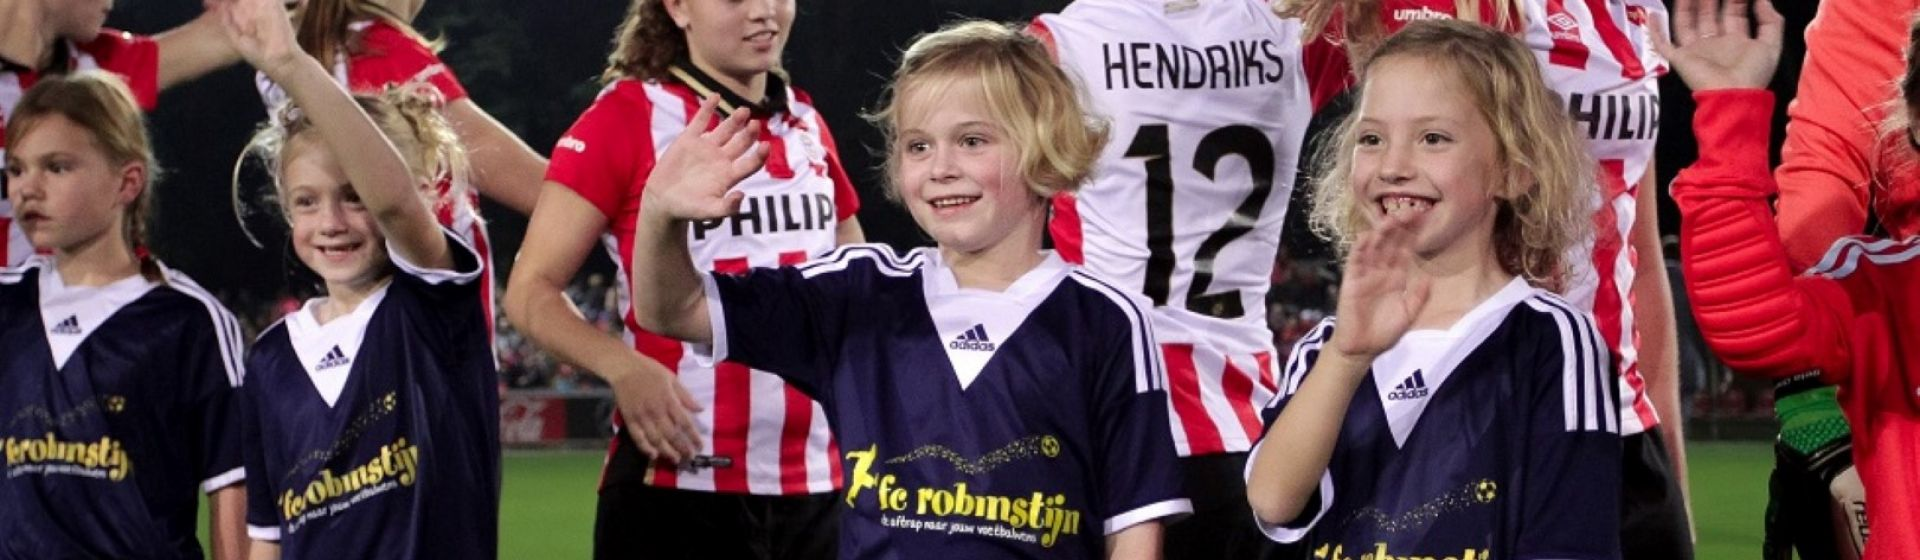 Line-up mascot before the game between PSV women and AJAX women for the Women's Eredivisie (Dutch primary competition). Event date: Friday Oktober 09th 2015, game started at 19.30h. Event location is sportcomplex De Herdgang in Eindhoven on the youth side of the sportcomplex (Photo by Fototb.nl / Thomas Bakker)